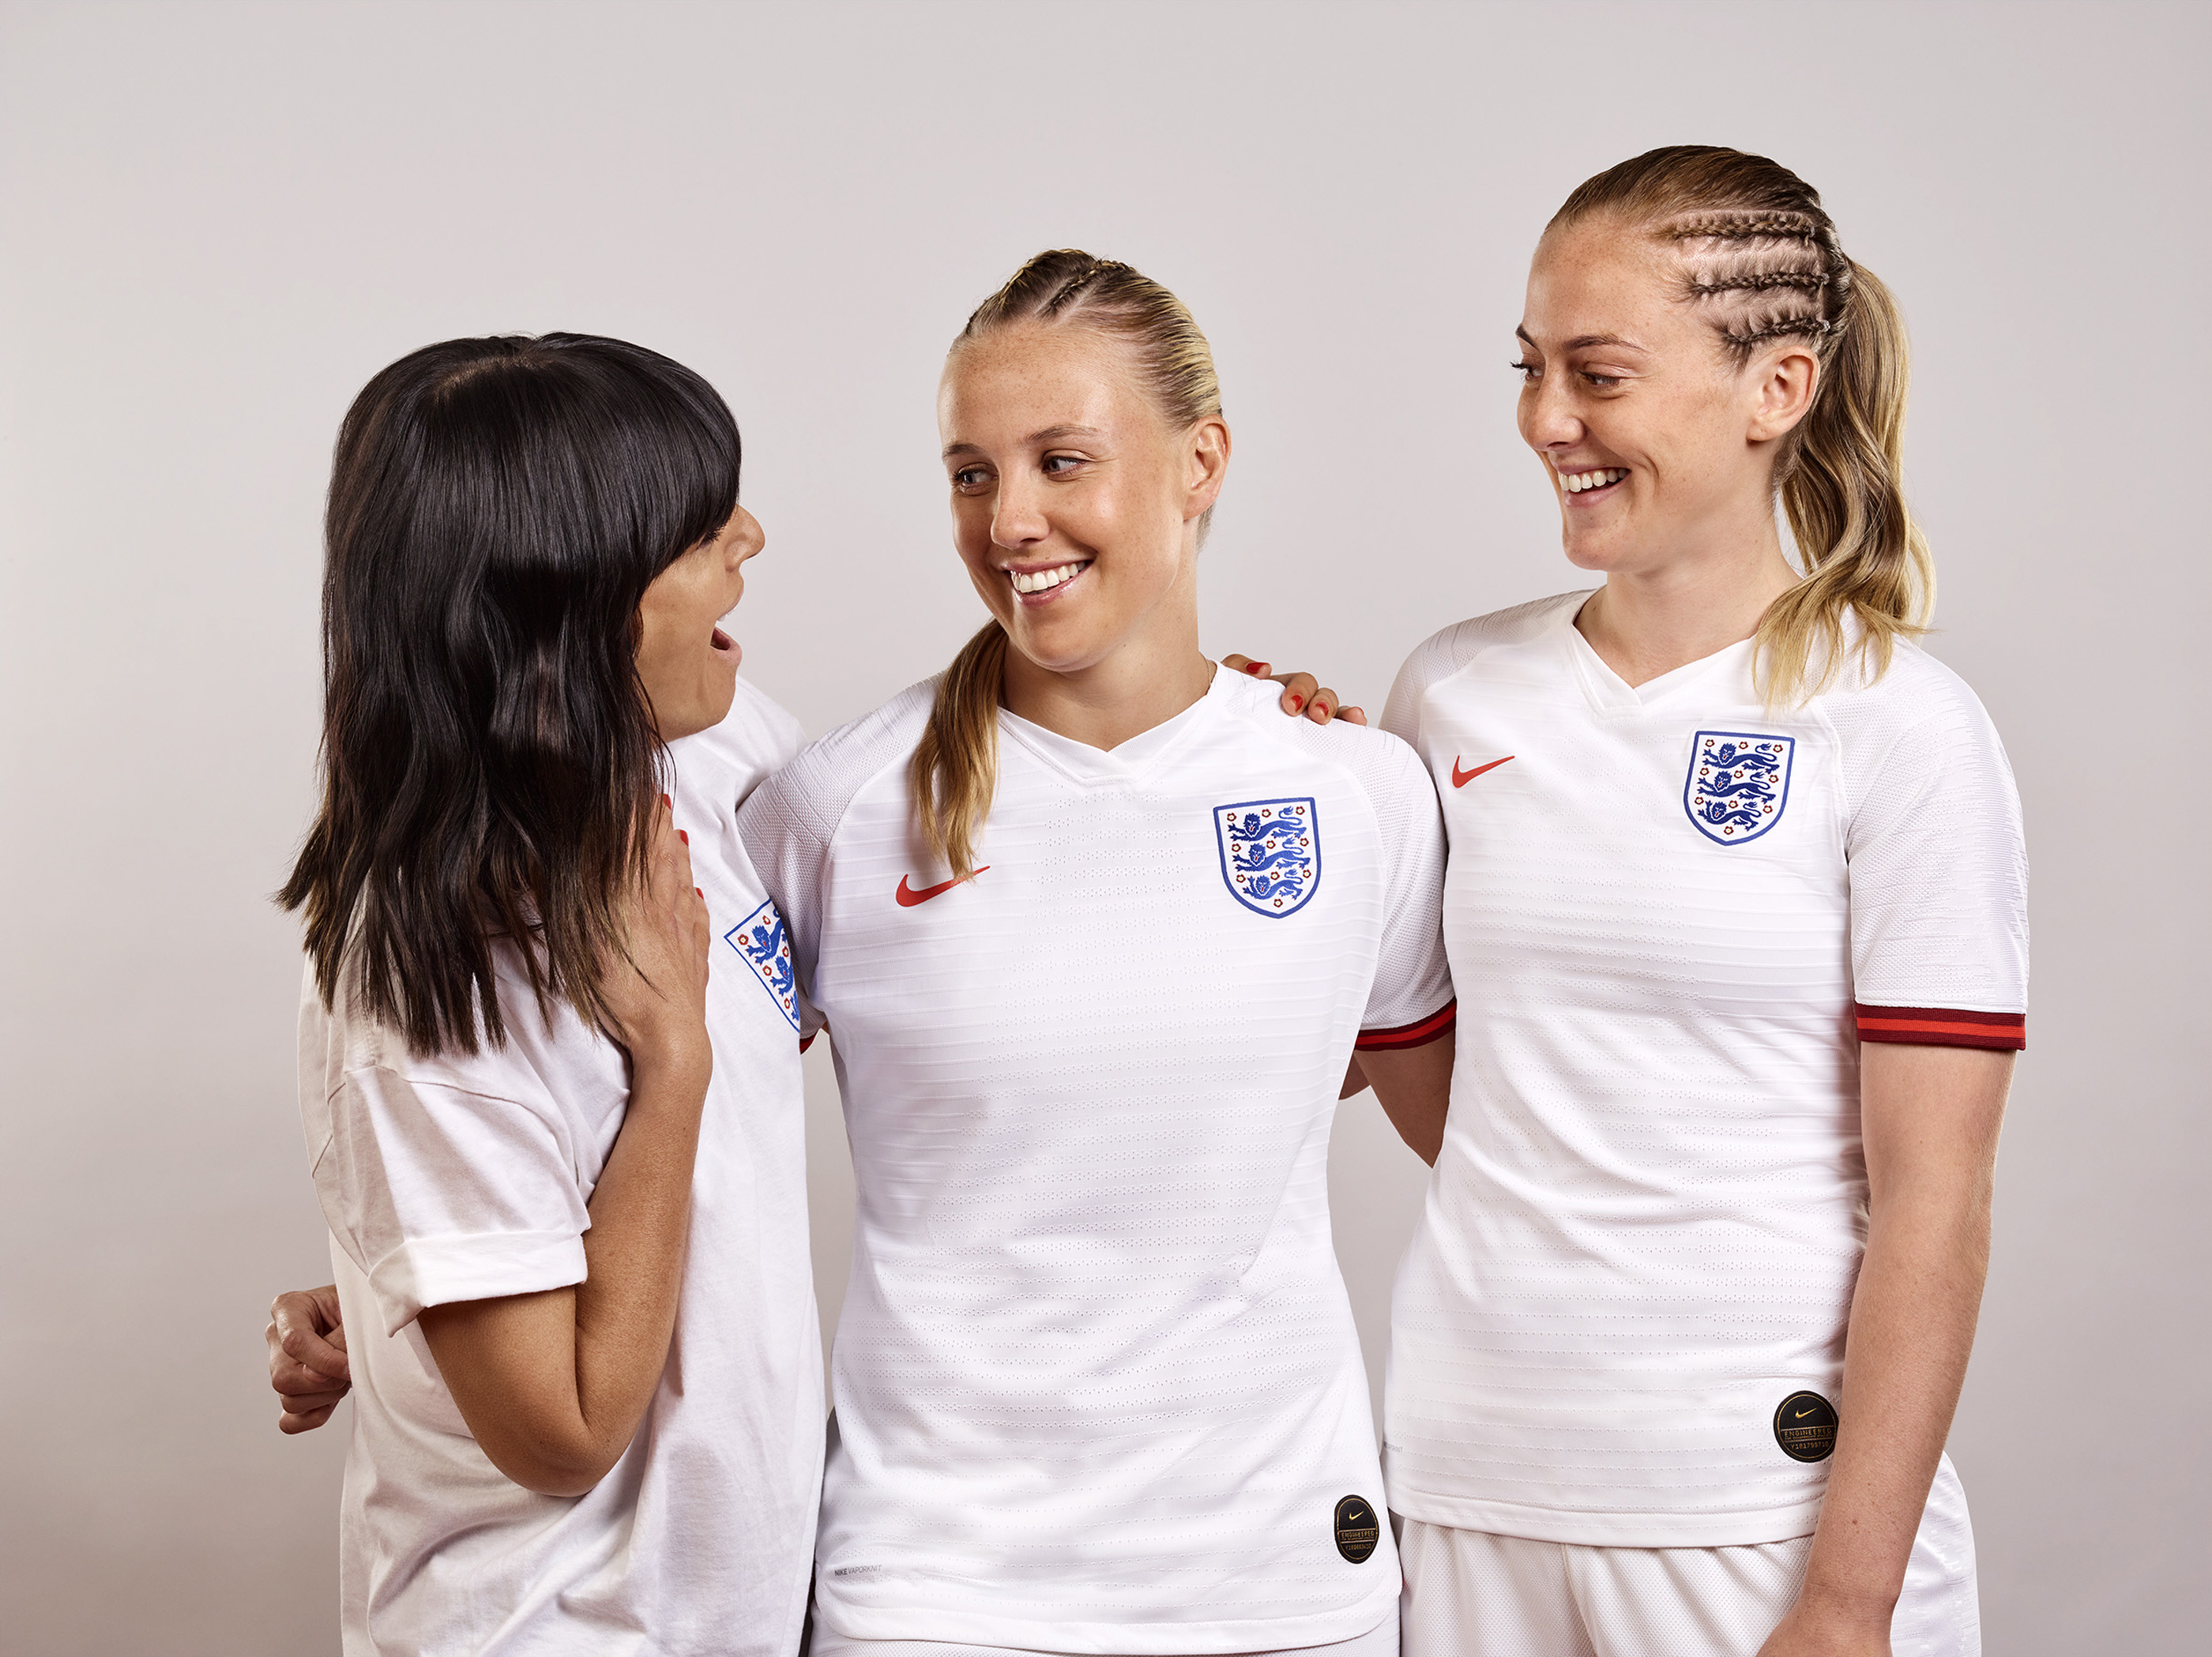 Head & Shoulders ambassador Claudia Winkleman (left) with members of the England women's World Cup squad